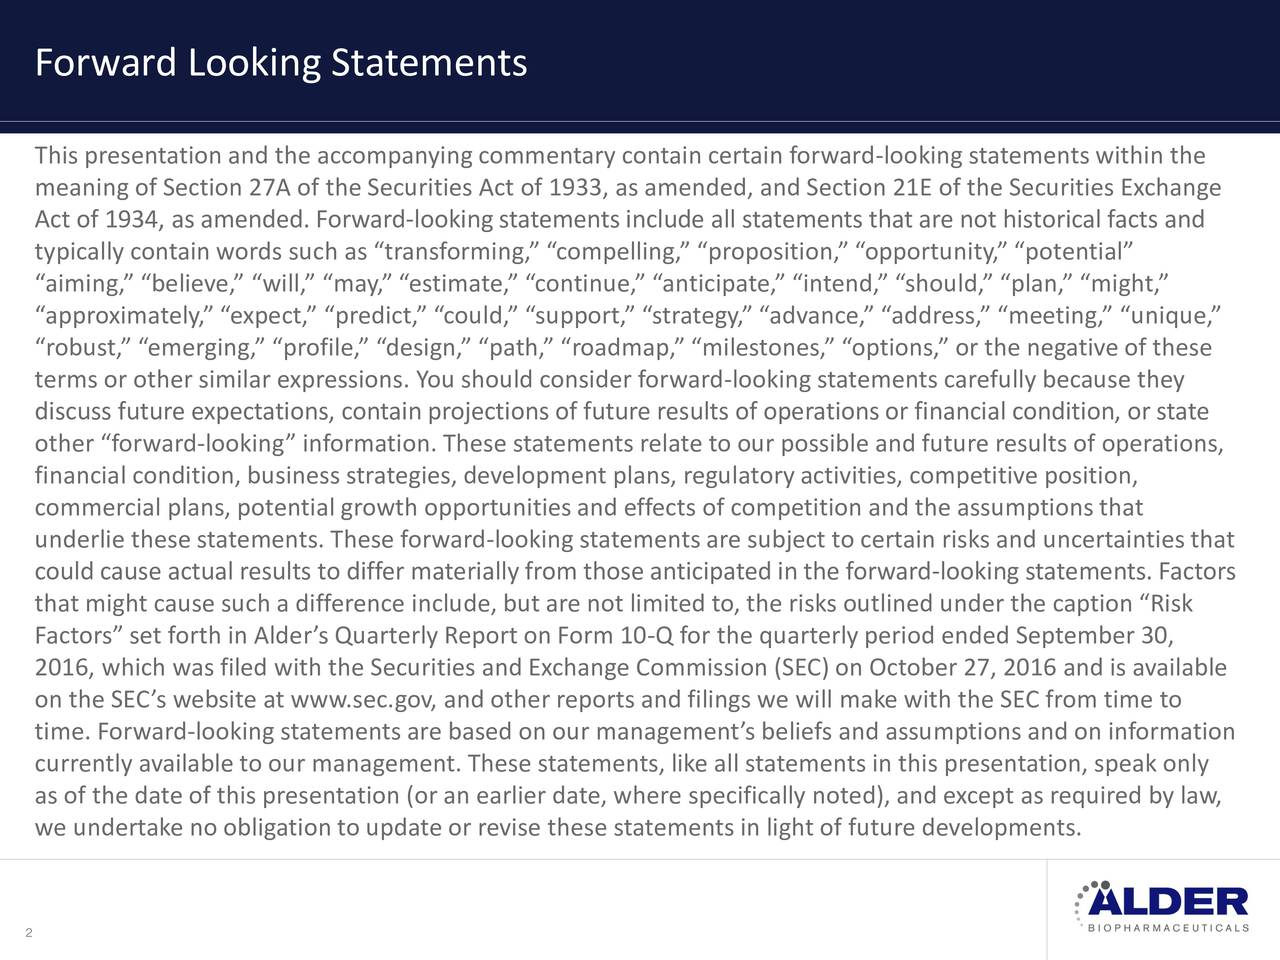 This presentation and the accompanying commentary contain certain forward-looking statements within the meaning of Section 27A of the Securities Act of 1933, as amended, and Section 21E of the Securities Exchange Act of 1934, as amended. Forward-looking statements include all statements that are not historical facts and typically contain words such as transforming, compelling, proposition, opportunity, potential aiming, believe, will, may, estimate, continue, anticipate, intend, should, plan, might, approximately, expect, predict, could, support, strategy, advance, address, meeting, unique, robust, emerging, profile, design, path, roadmap, milestones, options, or the negative of these terms or other similar expressions. You should consider forward-looking statements carefully because they discuss future expectations, contain projections of future results of operations or financial condition, or state other forward-looking information. These statements relate to our possible and future results of operations, financial condition, business strategies, development plans, regulatoryactivities, competitive position, commercial plans, potential growth opportunities and effects of competition and the assumptions that underlie these statements. These forward-looking statements are subject to certain risks and uncertainties that could cause actual results to differ materially from those anticipated in the forward-looking statements. Factors that might cause such a difference include, but are not limited to, the risks outlined under the caption Risk Factors set forth in Alders Quarterly Report on Form 10-Q for the quarterly period ended September 30, 2016, which was filed with the Securities and Exchange Commission (SEC) on October 27, 2016 and is available on the SECs website at www.sec.gov, and other reports and filings we will make with the SEC from time to time. Forward-looking statements are based on our managements beliefs and assumptions and on information currently ava